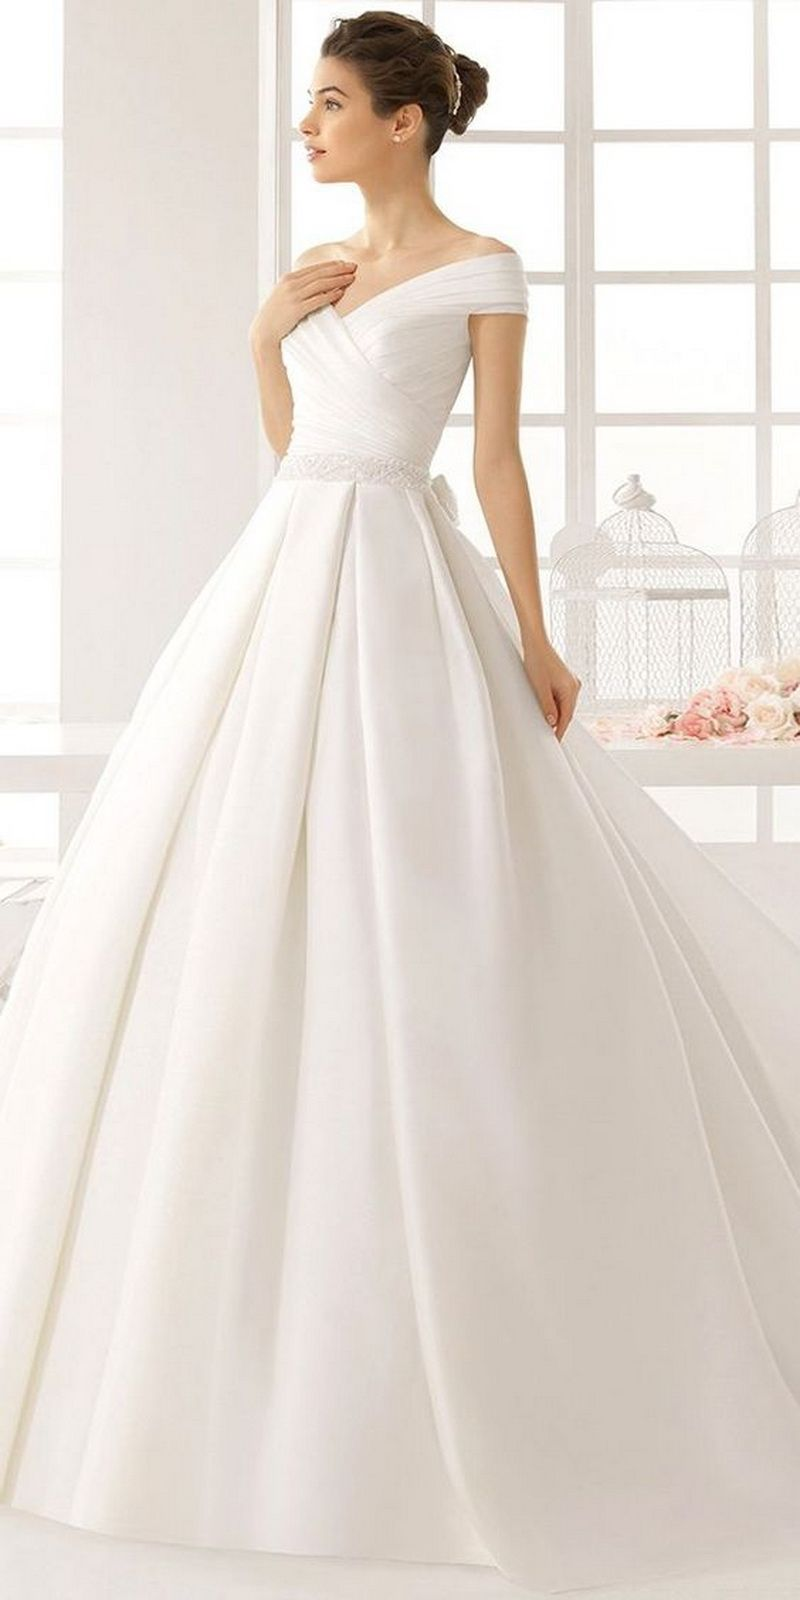 10 plain wedding dresses for chic and simple style #outfit